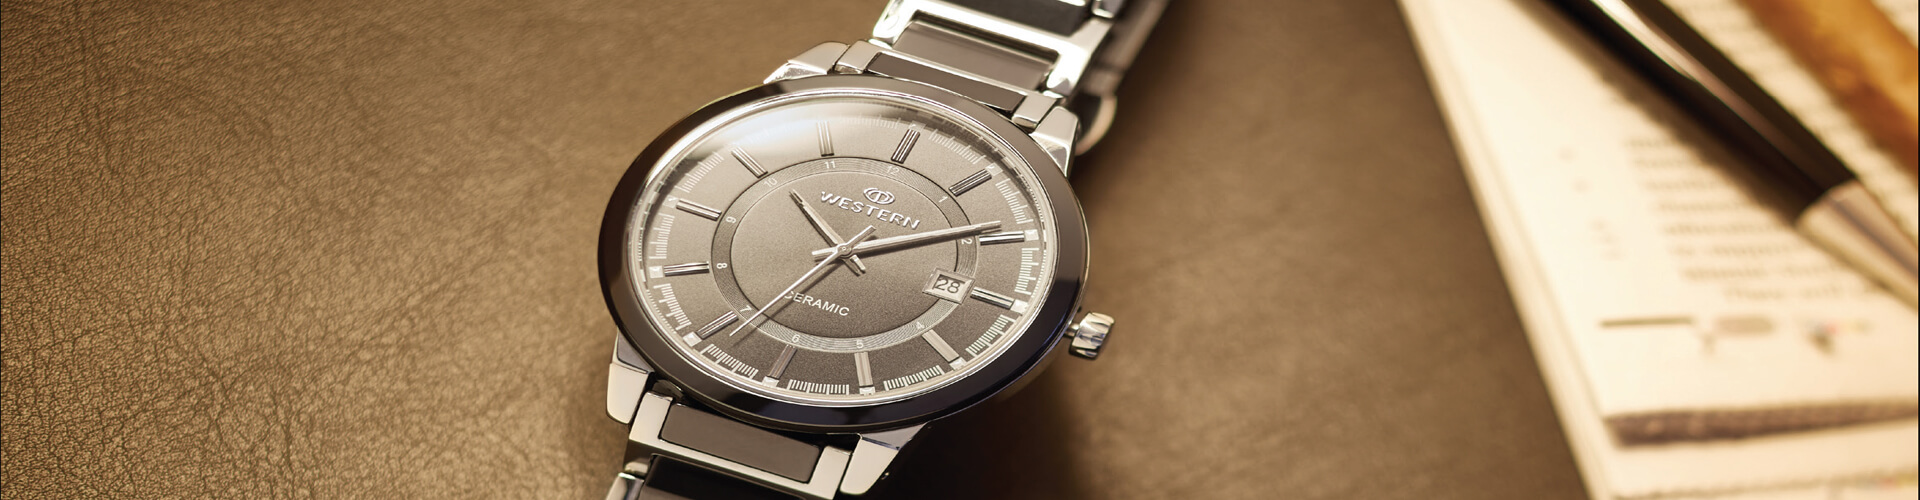 Classic Timepieces for Men at Western Watches